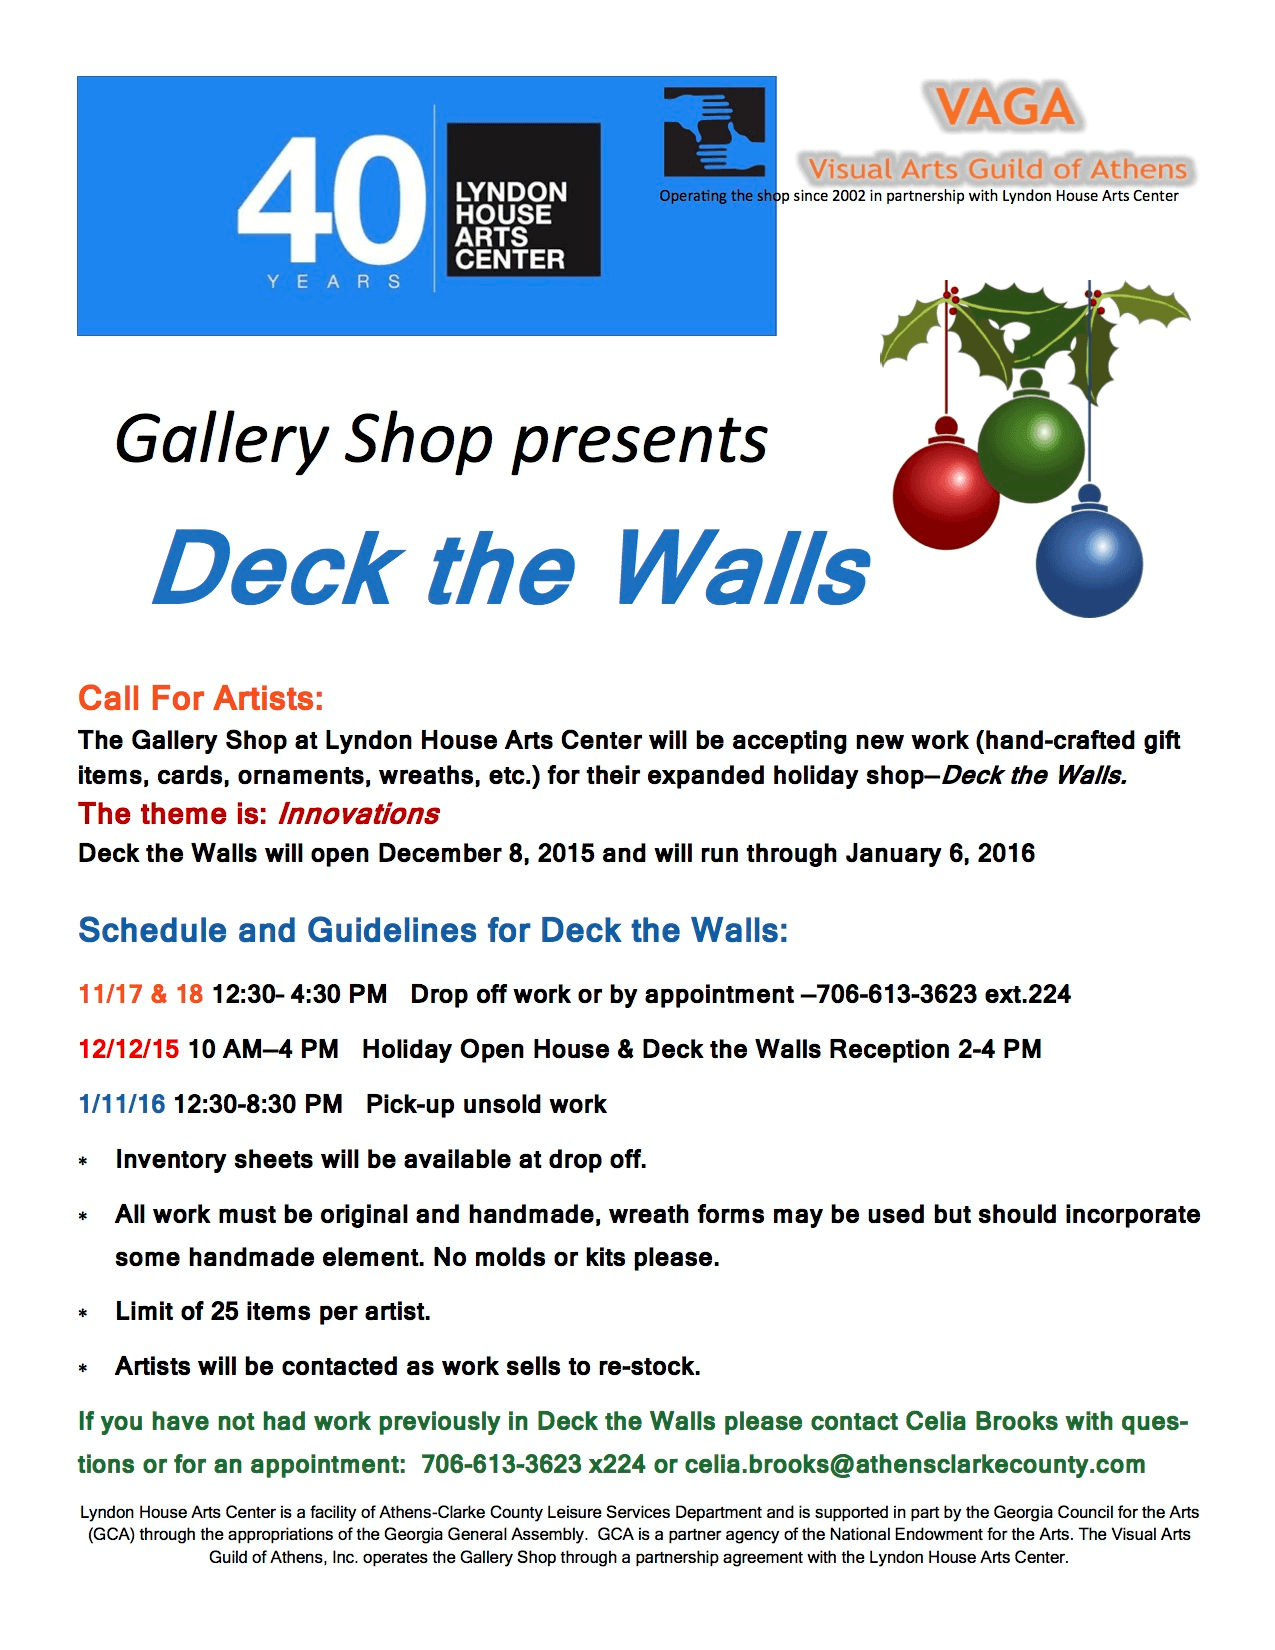 Deck the Walls